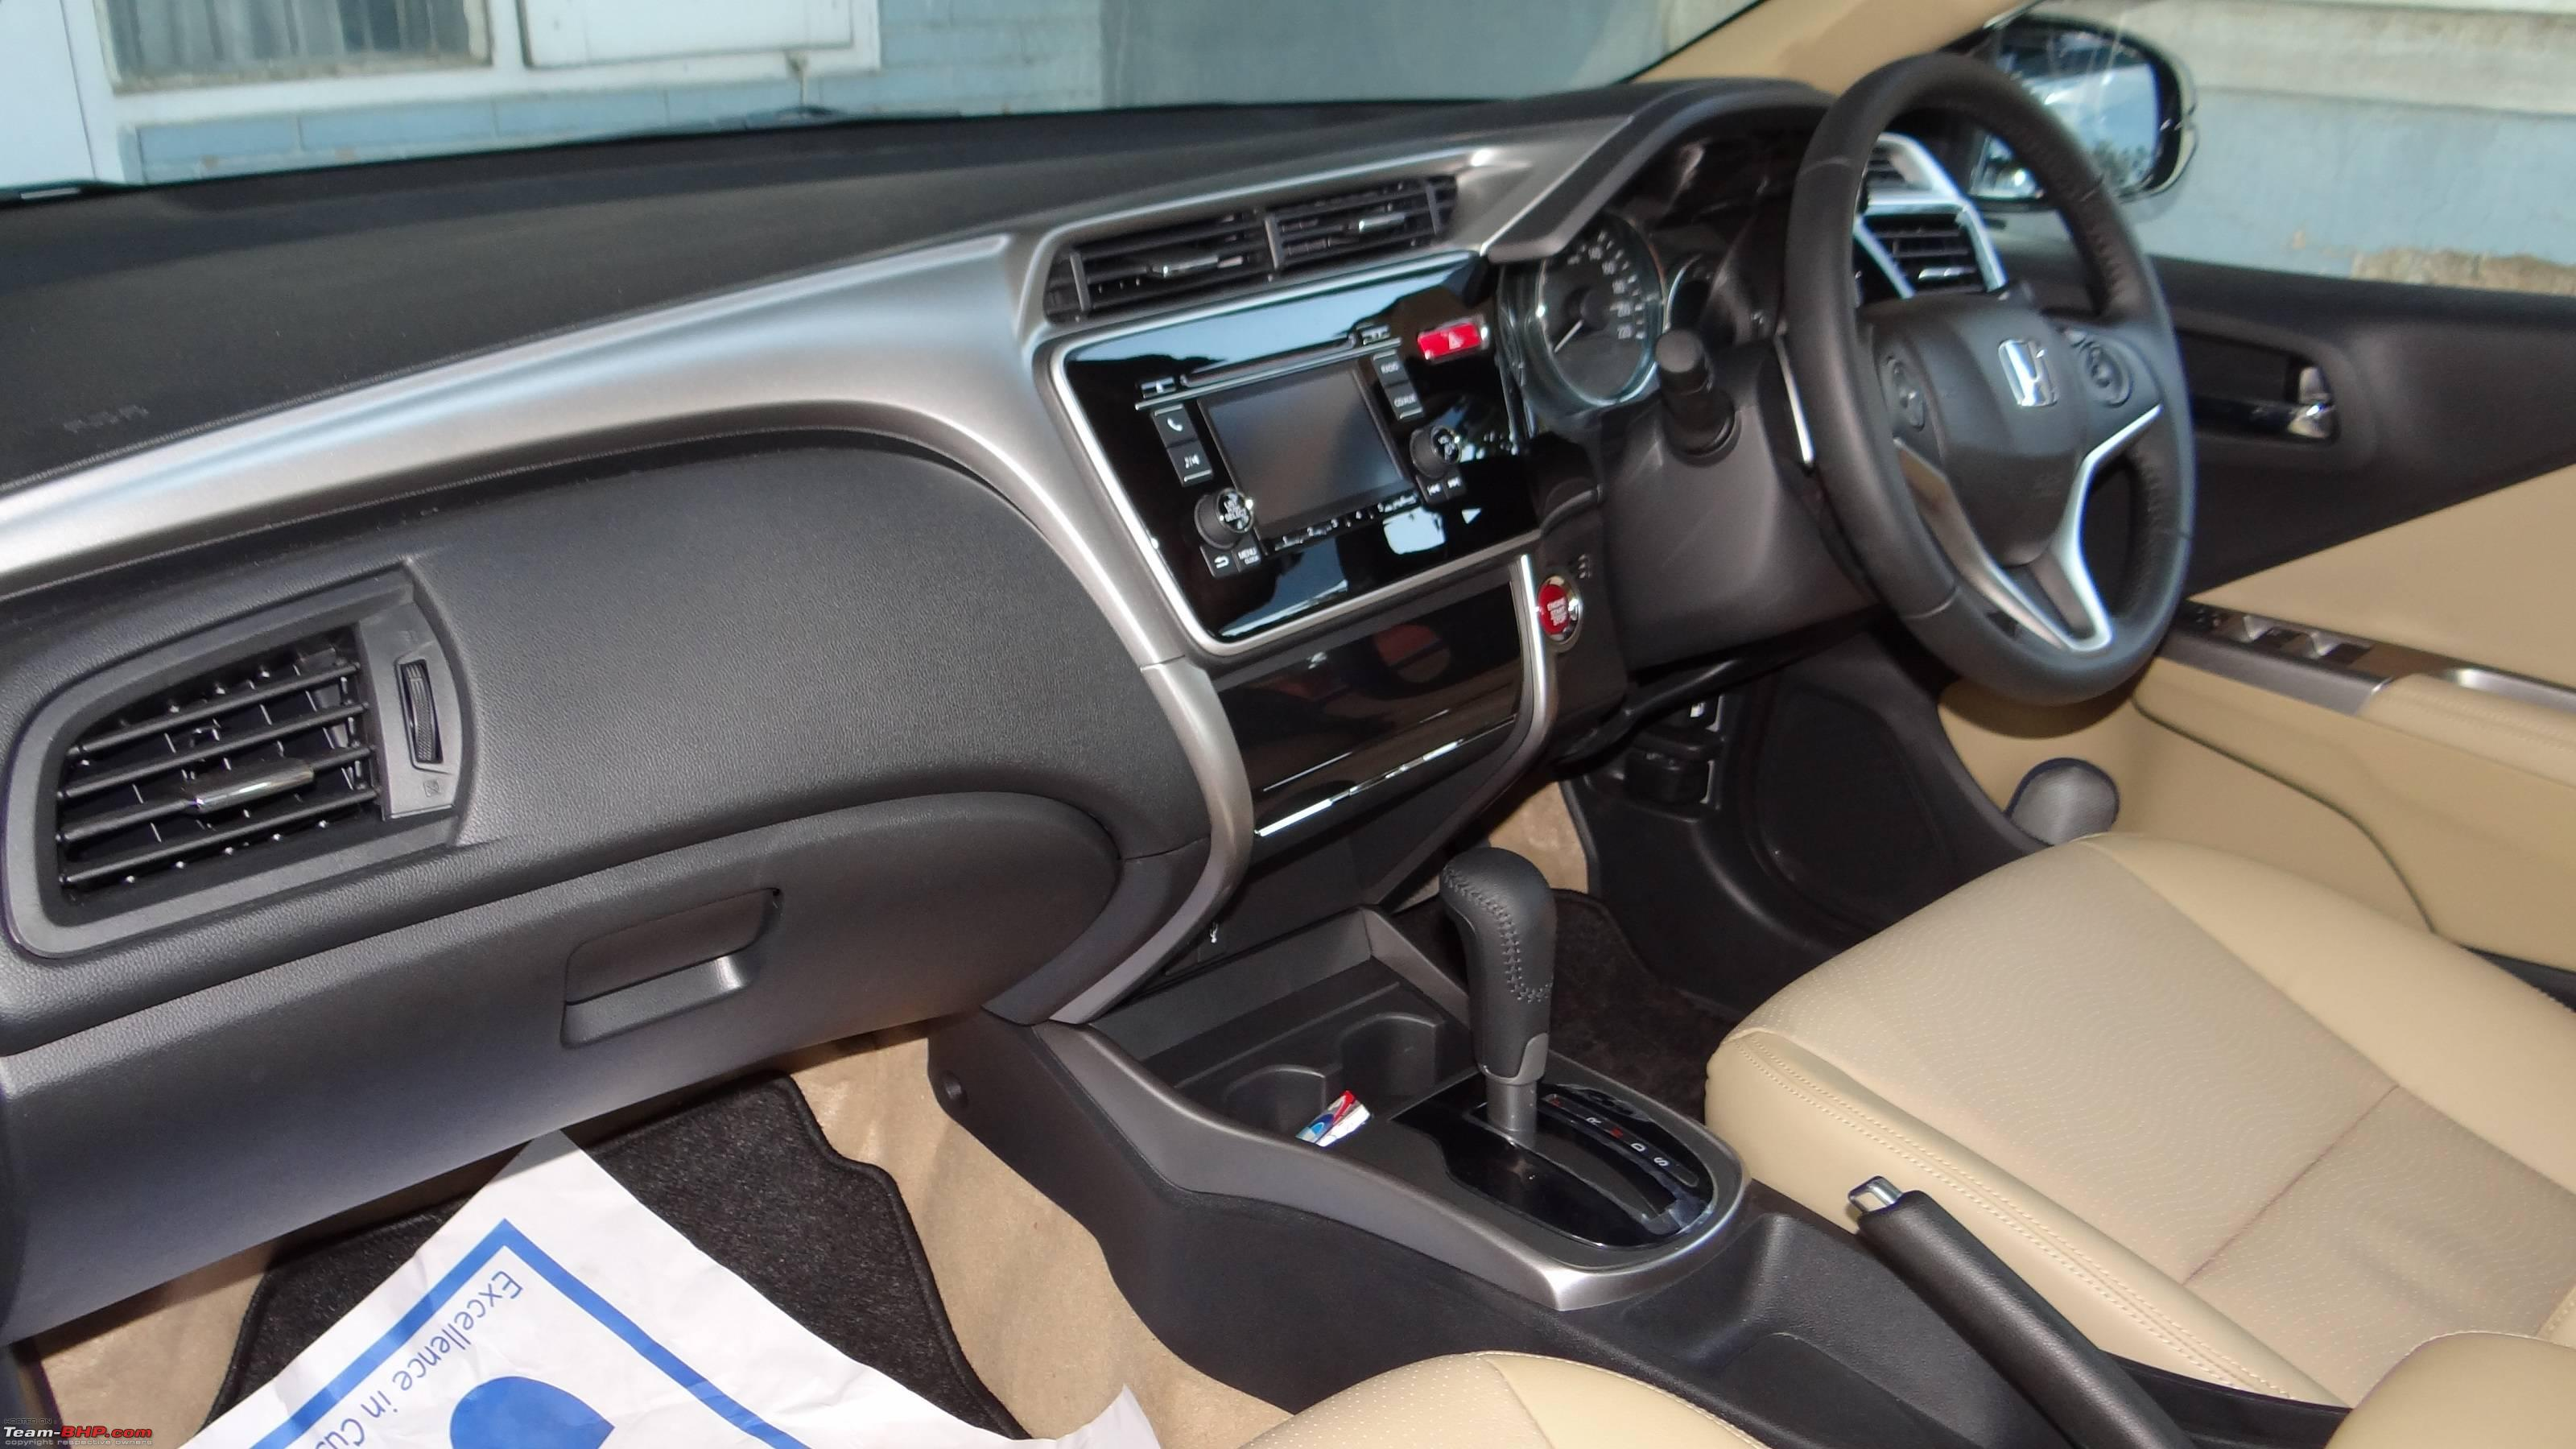 https://www.team-bhp.com/forum/attachments/test-drives-initial-ownership-reports/1353243d1427223830-my-first-automatic-car-honda-city-cvt-vx-paddle-shifters-dsc02689.jpg